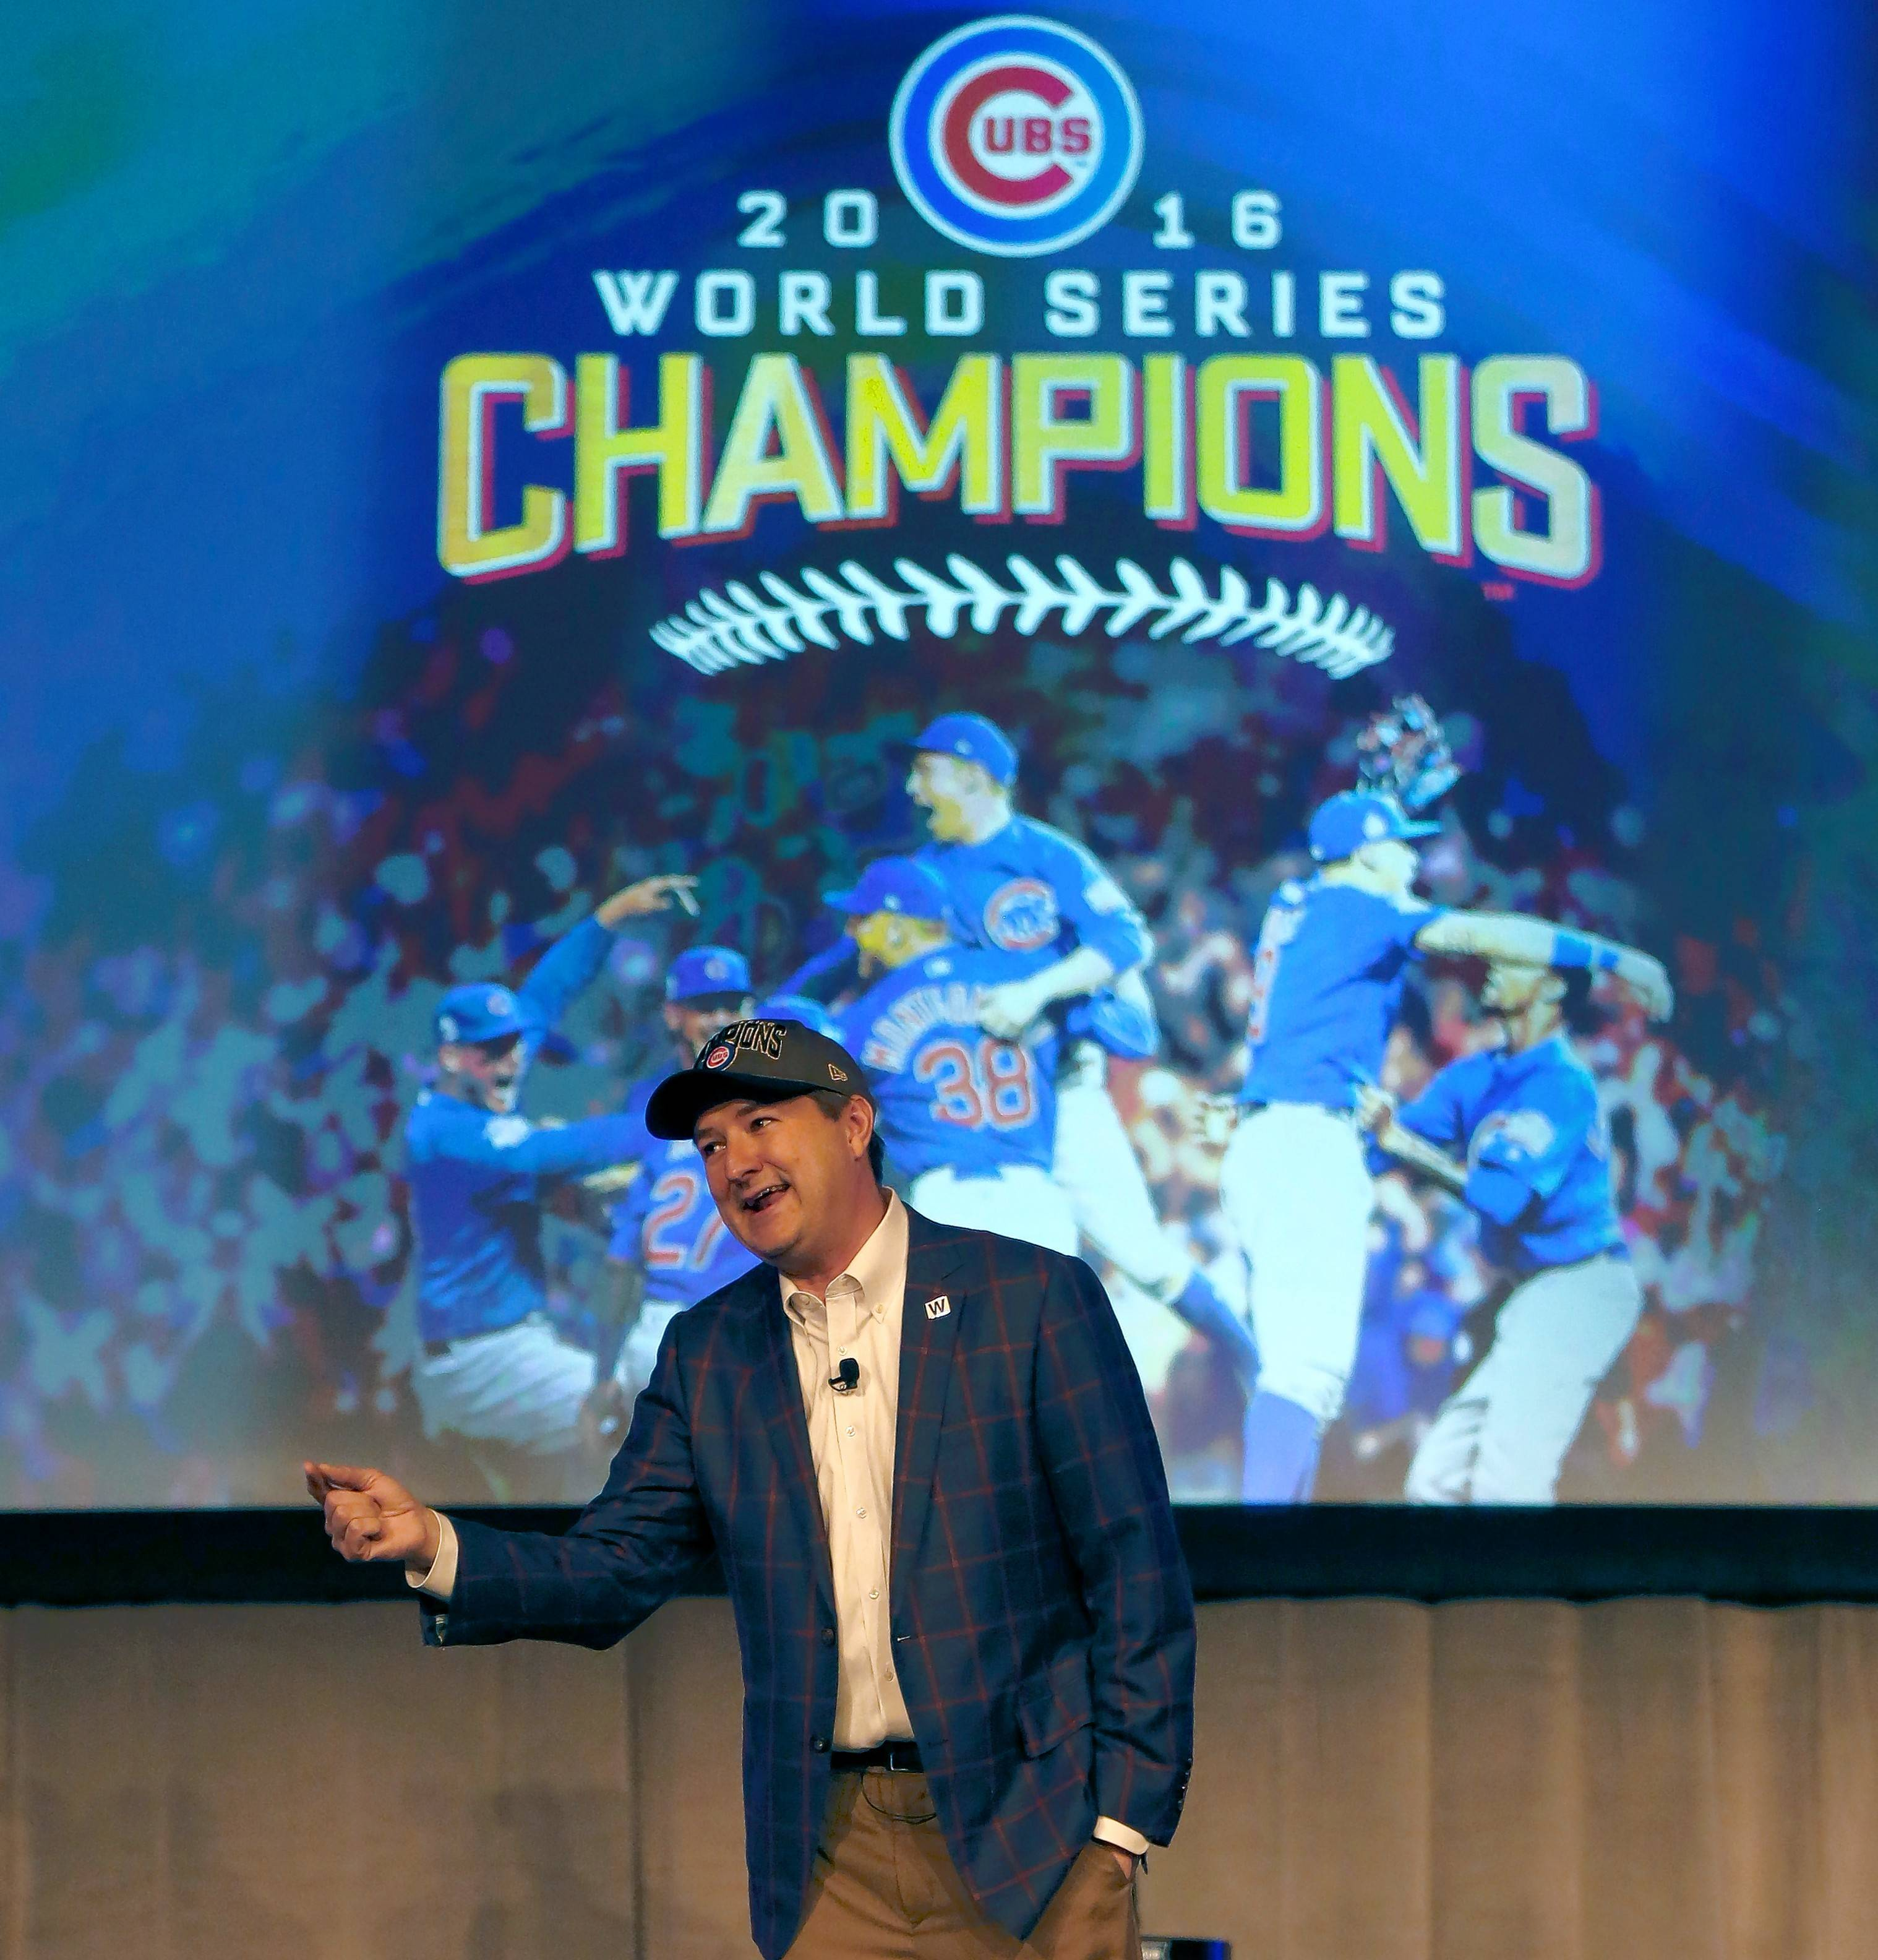 With the World Series champs in the house, Chicago Cubs chairman Tom Ricketts had no trouble revving up the crowd at the team's annual fan convention this weekend.